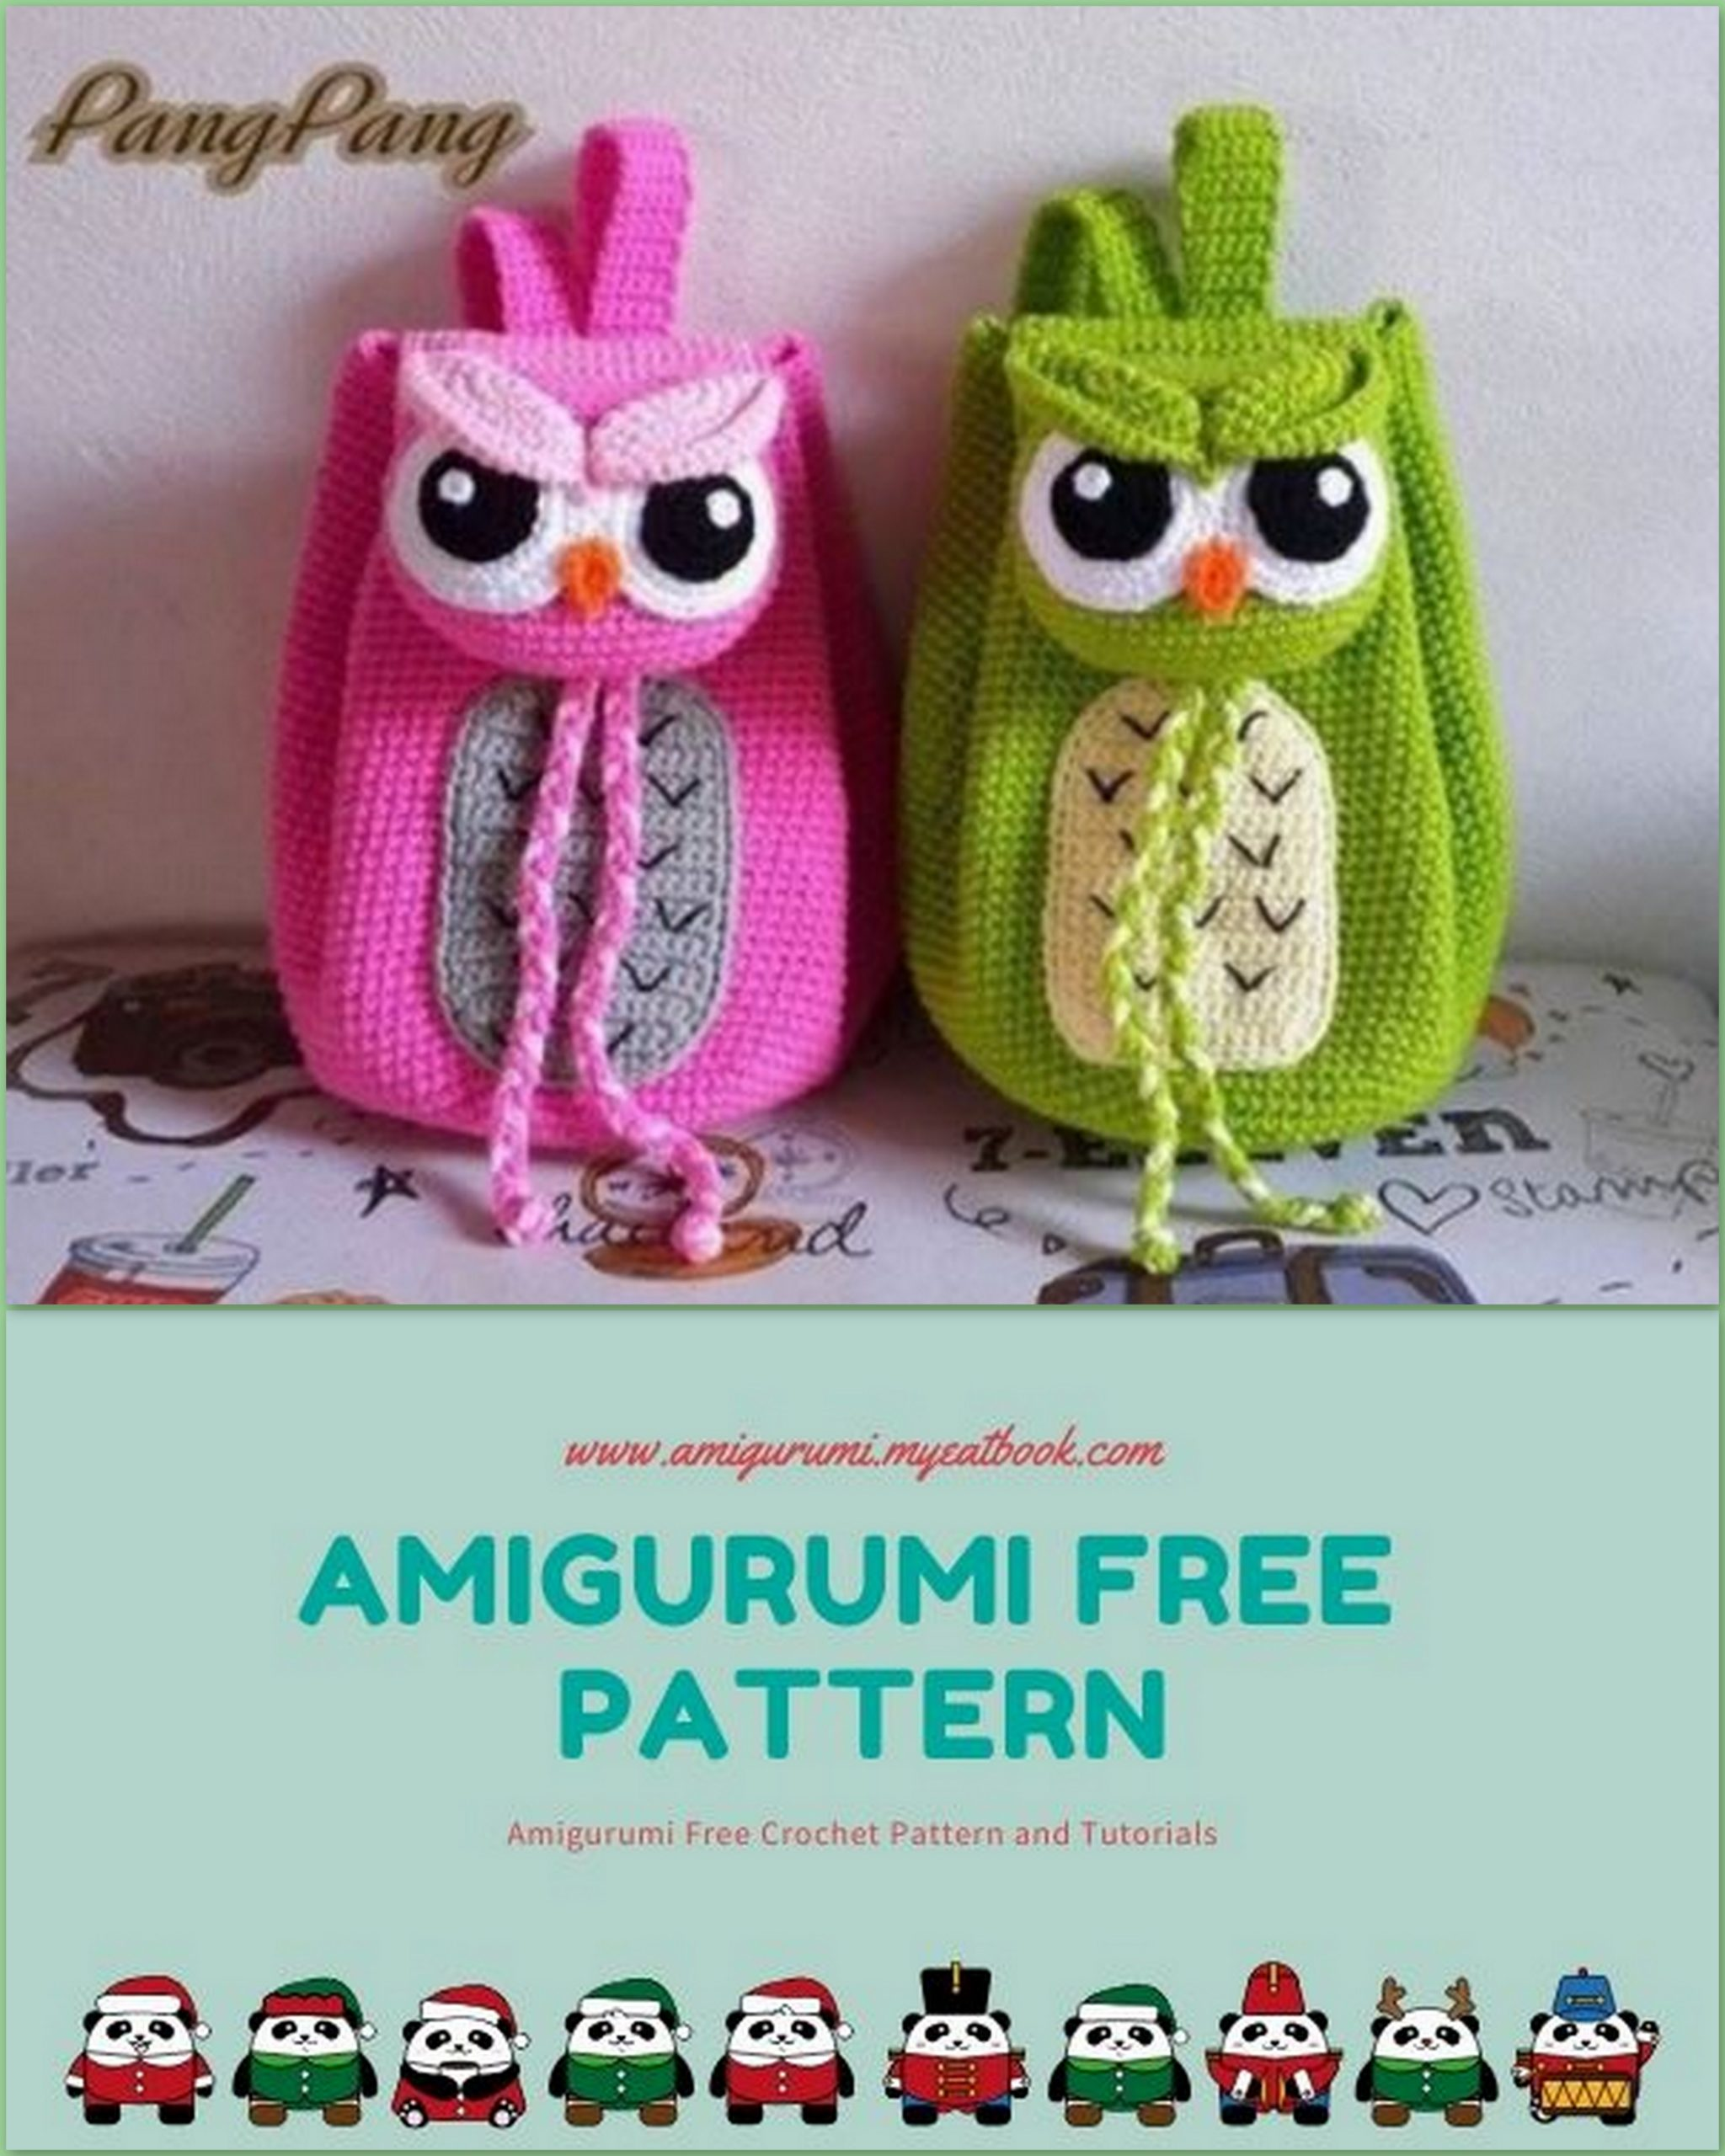 Koko the Owl Crochet pattern by Megan Barclay | Knitting Patterns ... | 2560x2048